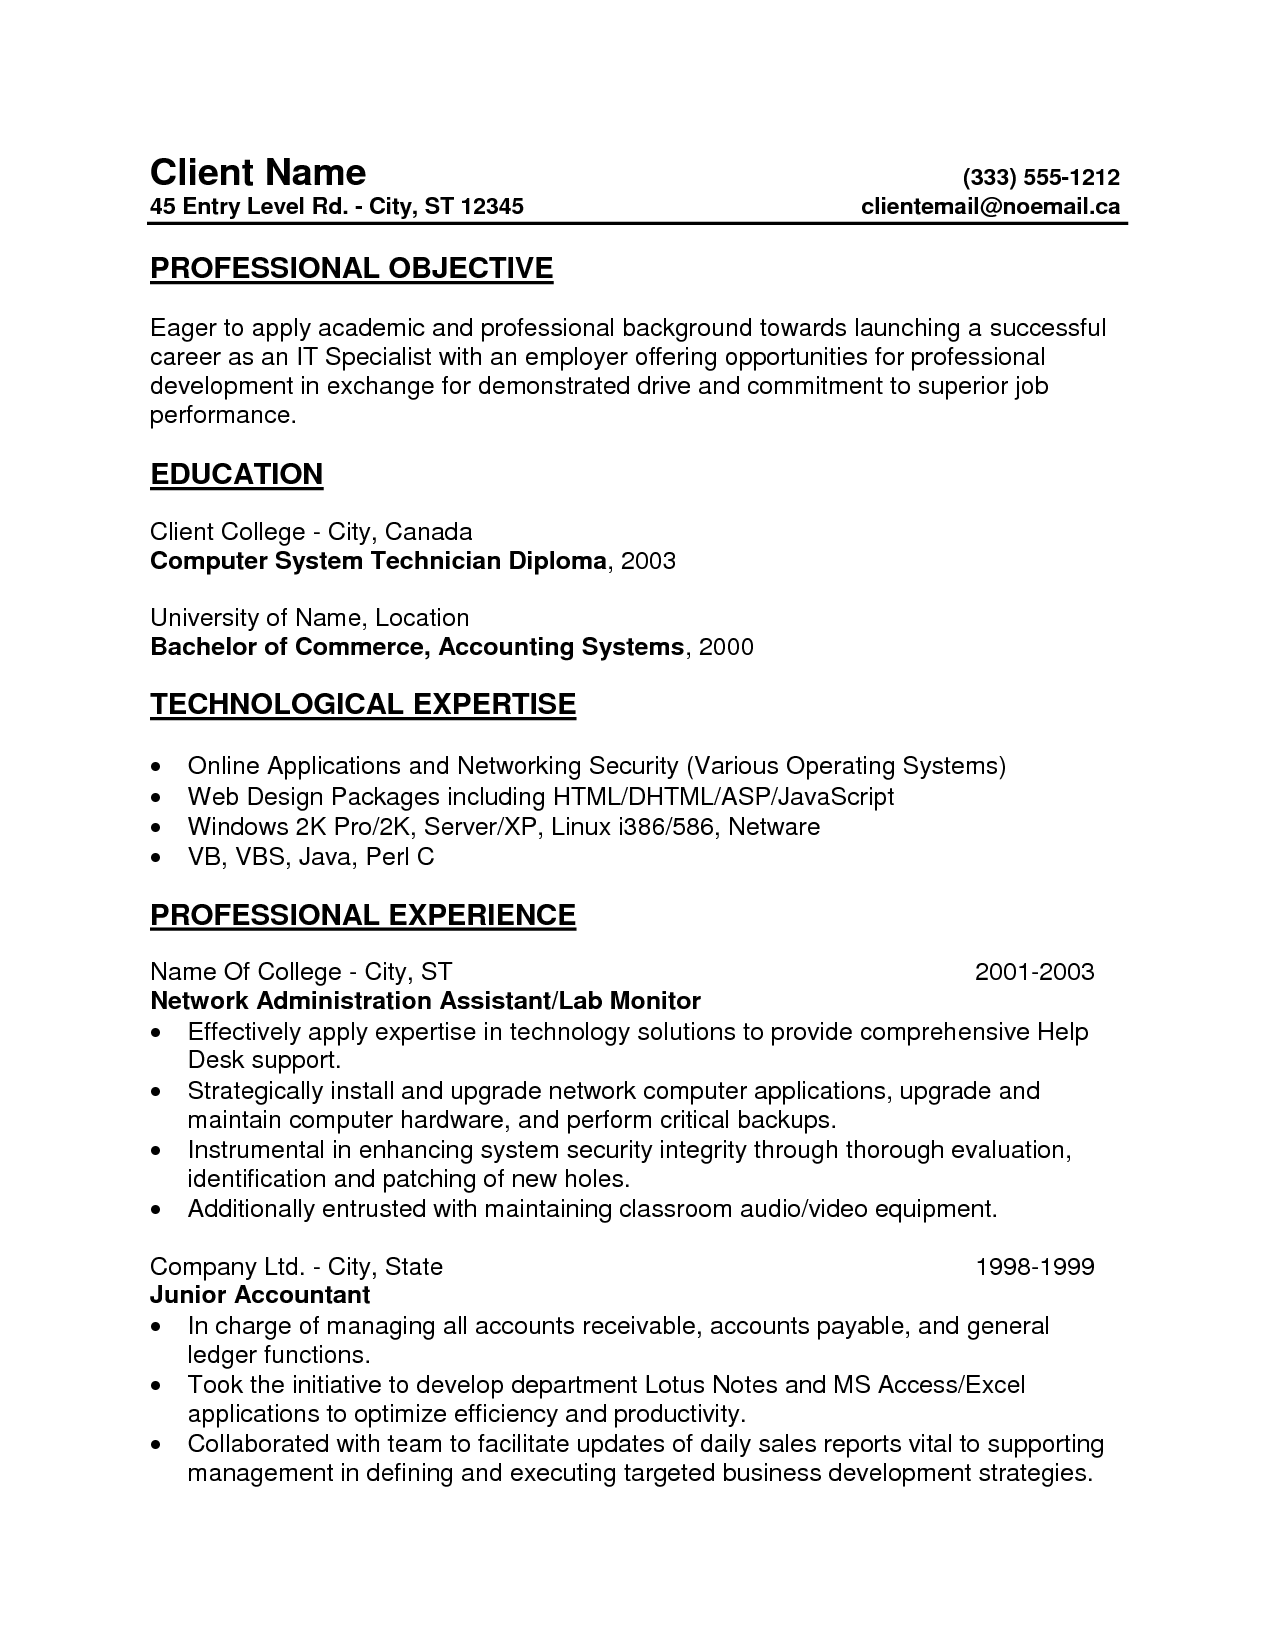 Beautiful Entry Level Resume Professional Objective And Professional Experience Pertaining To Resume Entry Level